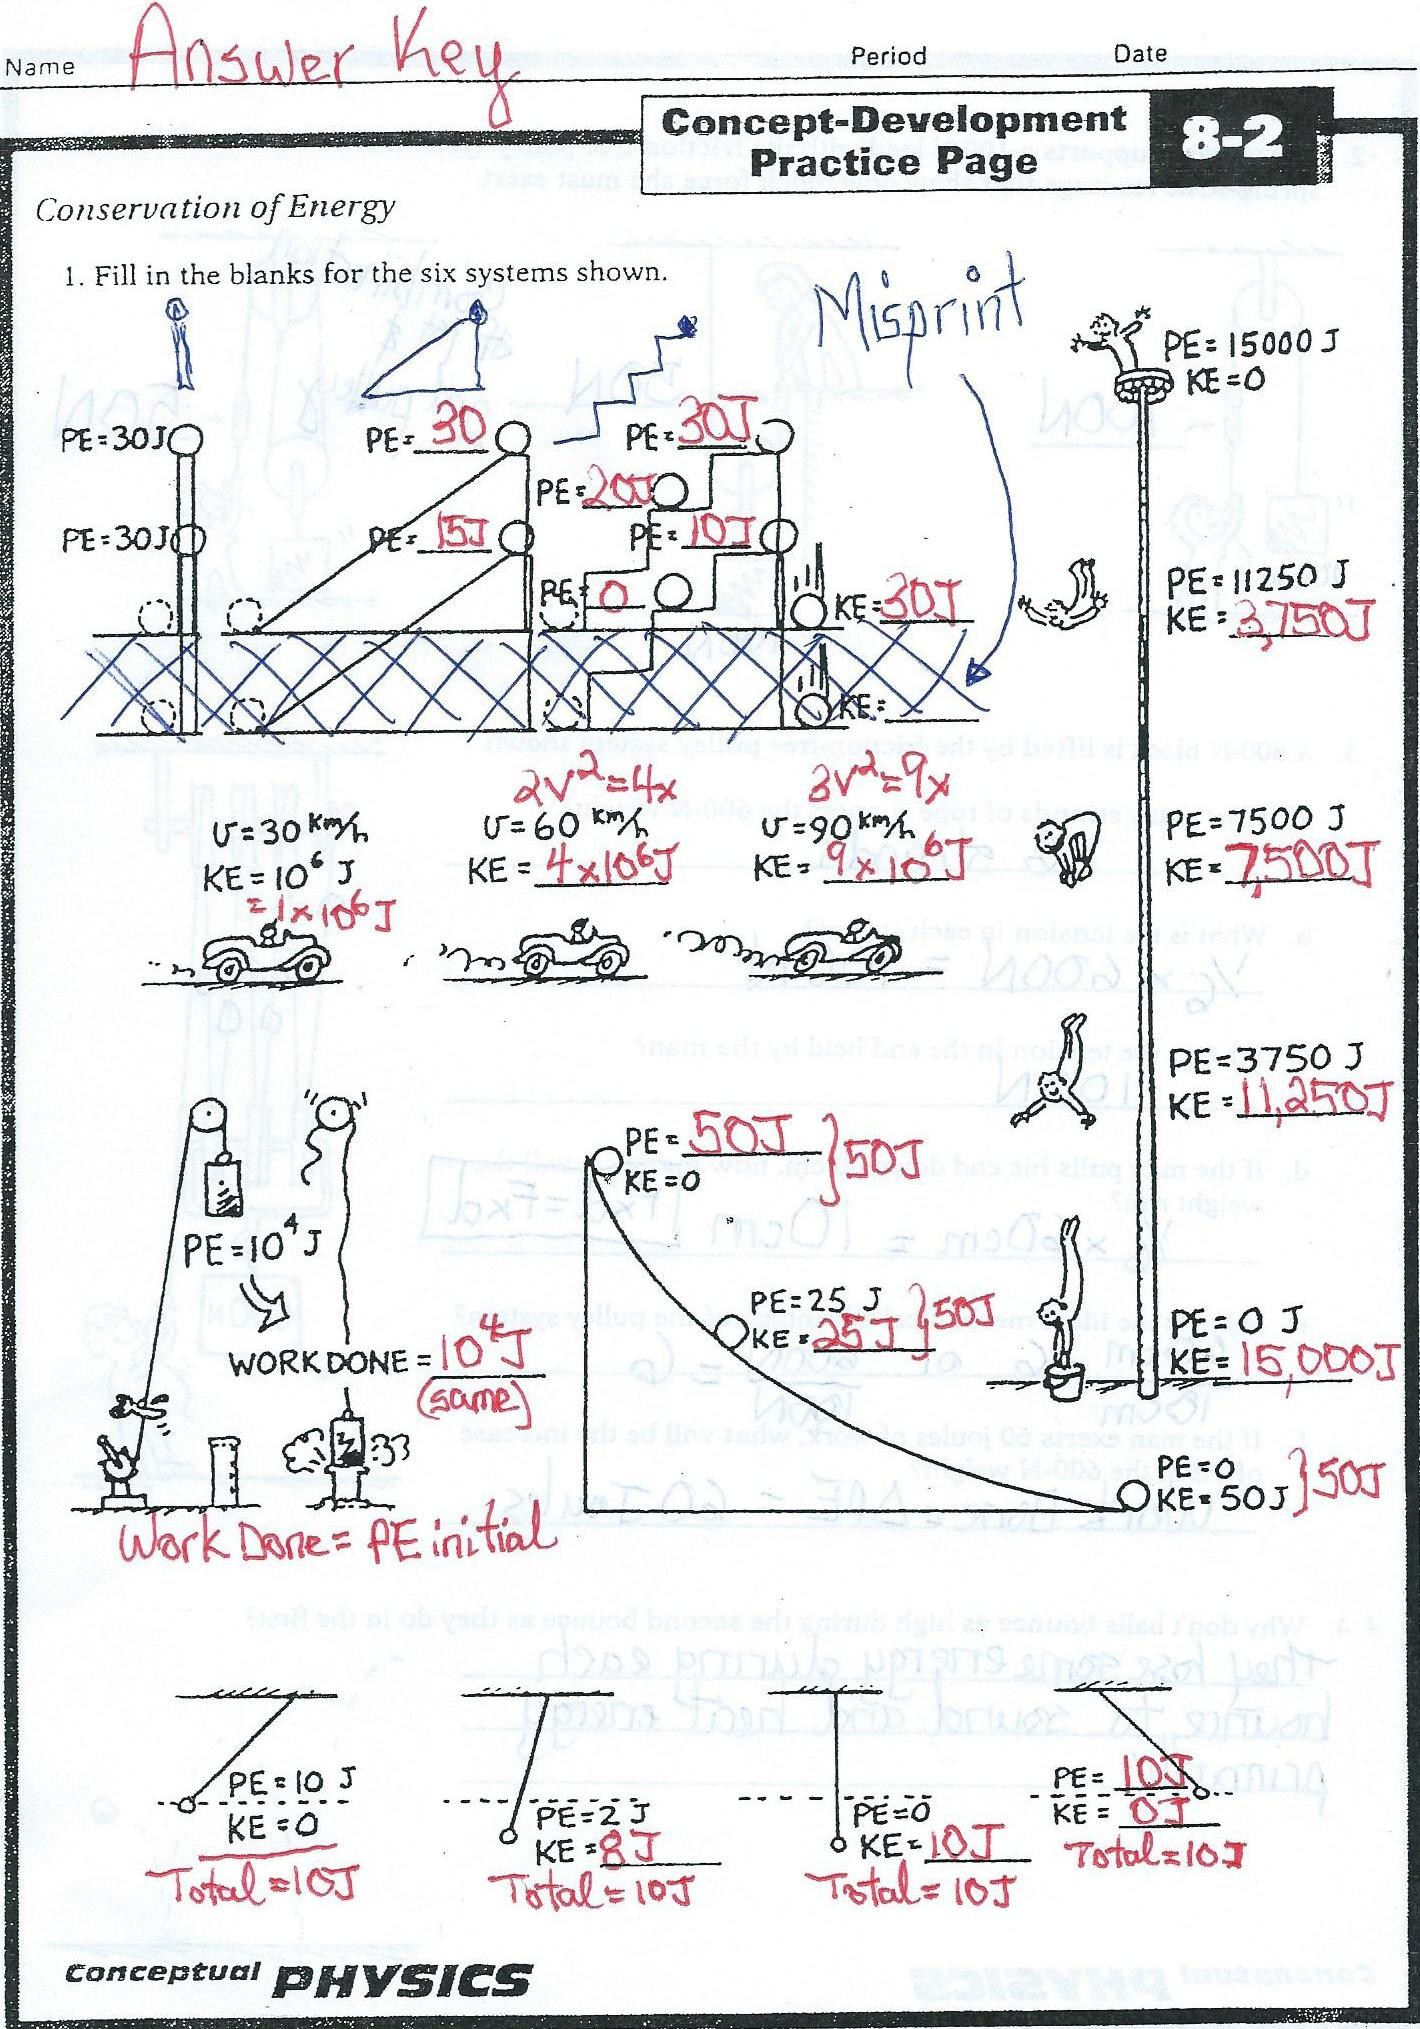 Worksheets Conceptual Physics Worksheets south pasadena high school chp 8 cde 2 front answers jpg